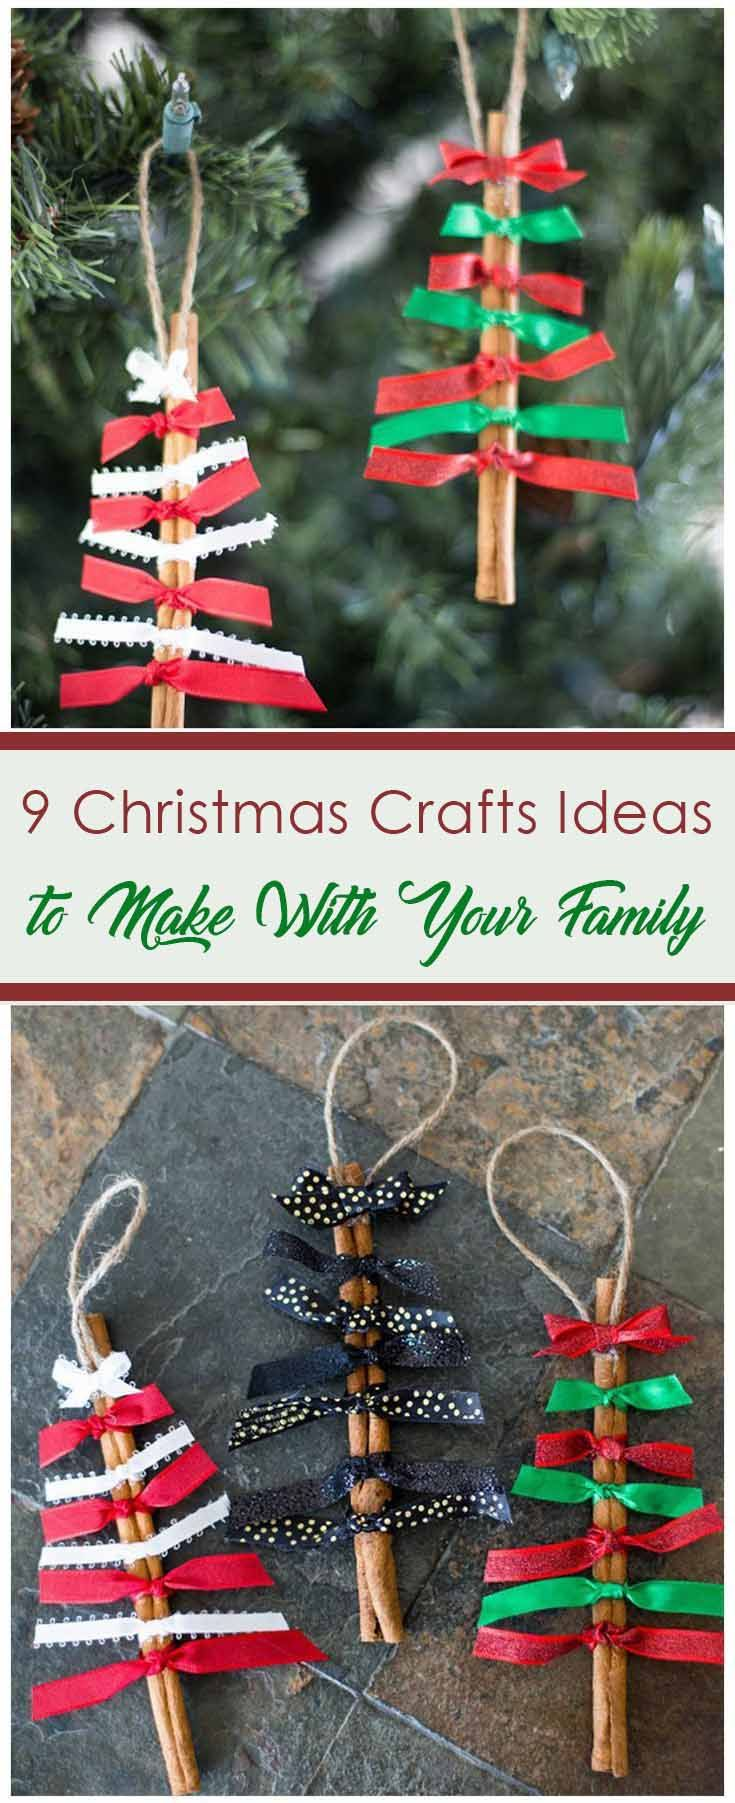 12 Amazing Christmas Gifts Ideas for Family Members | School Craft ...